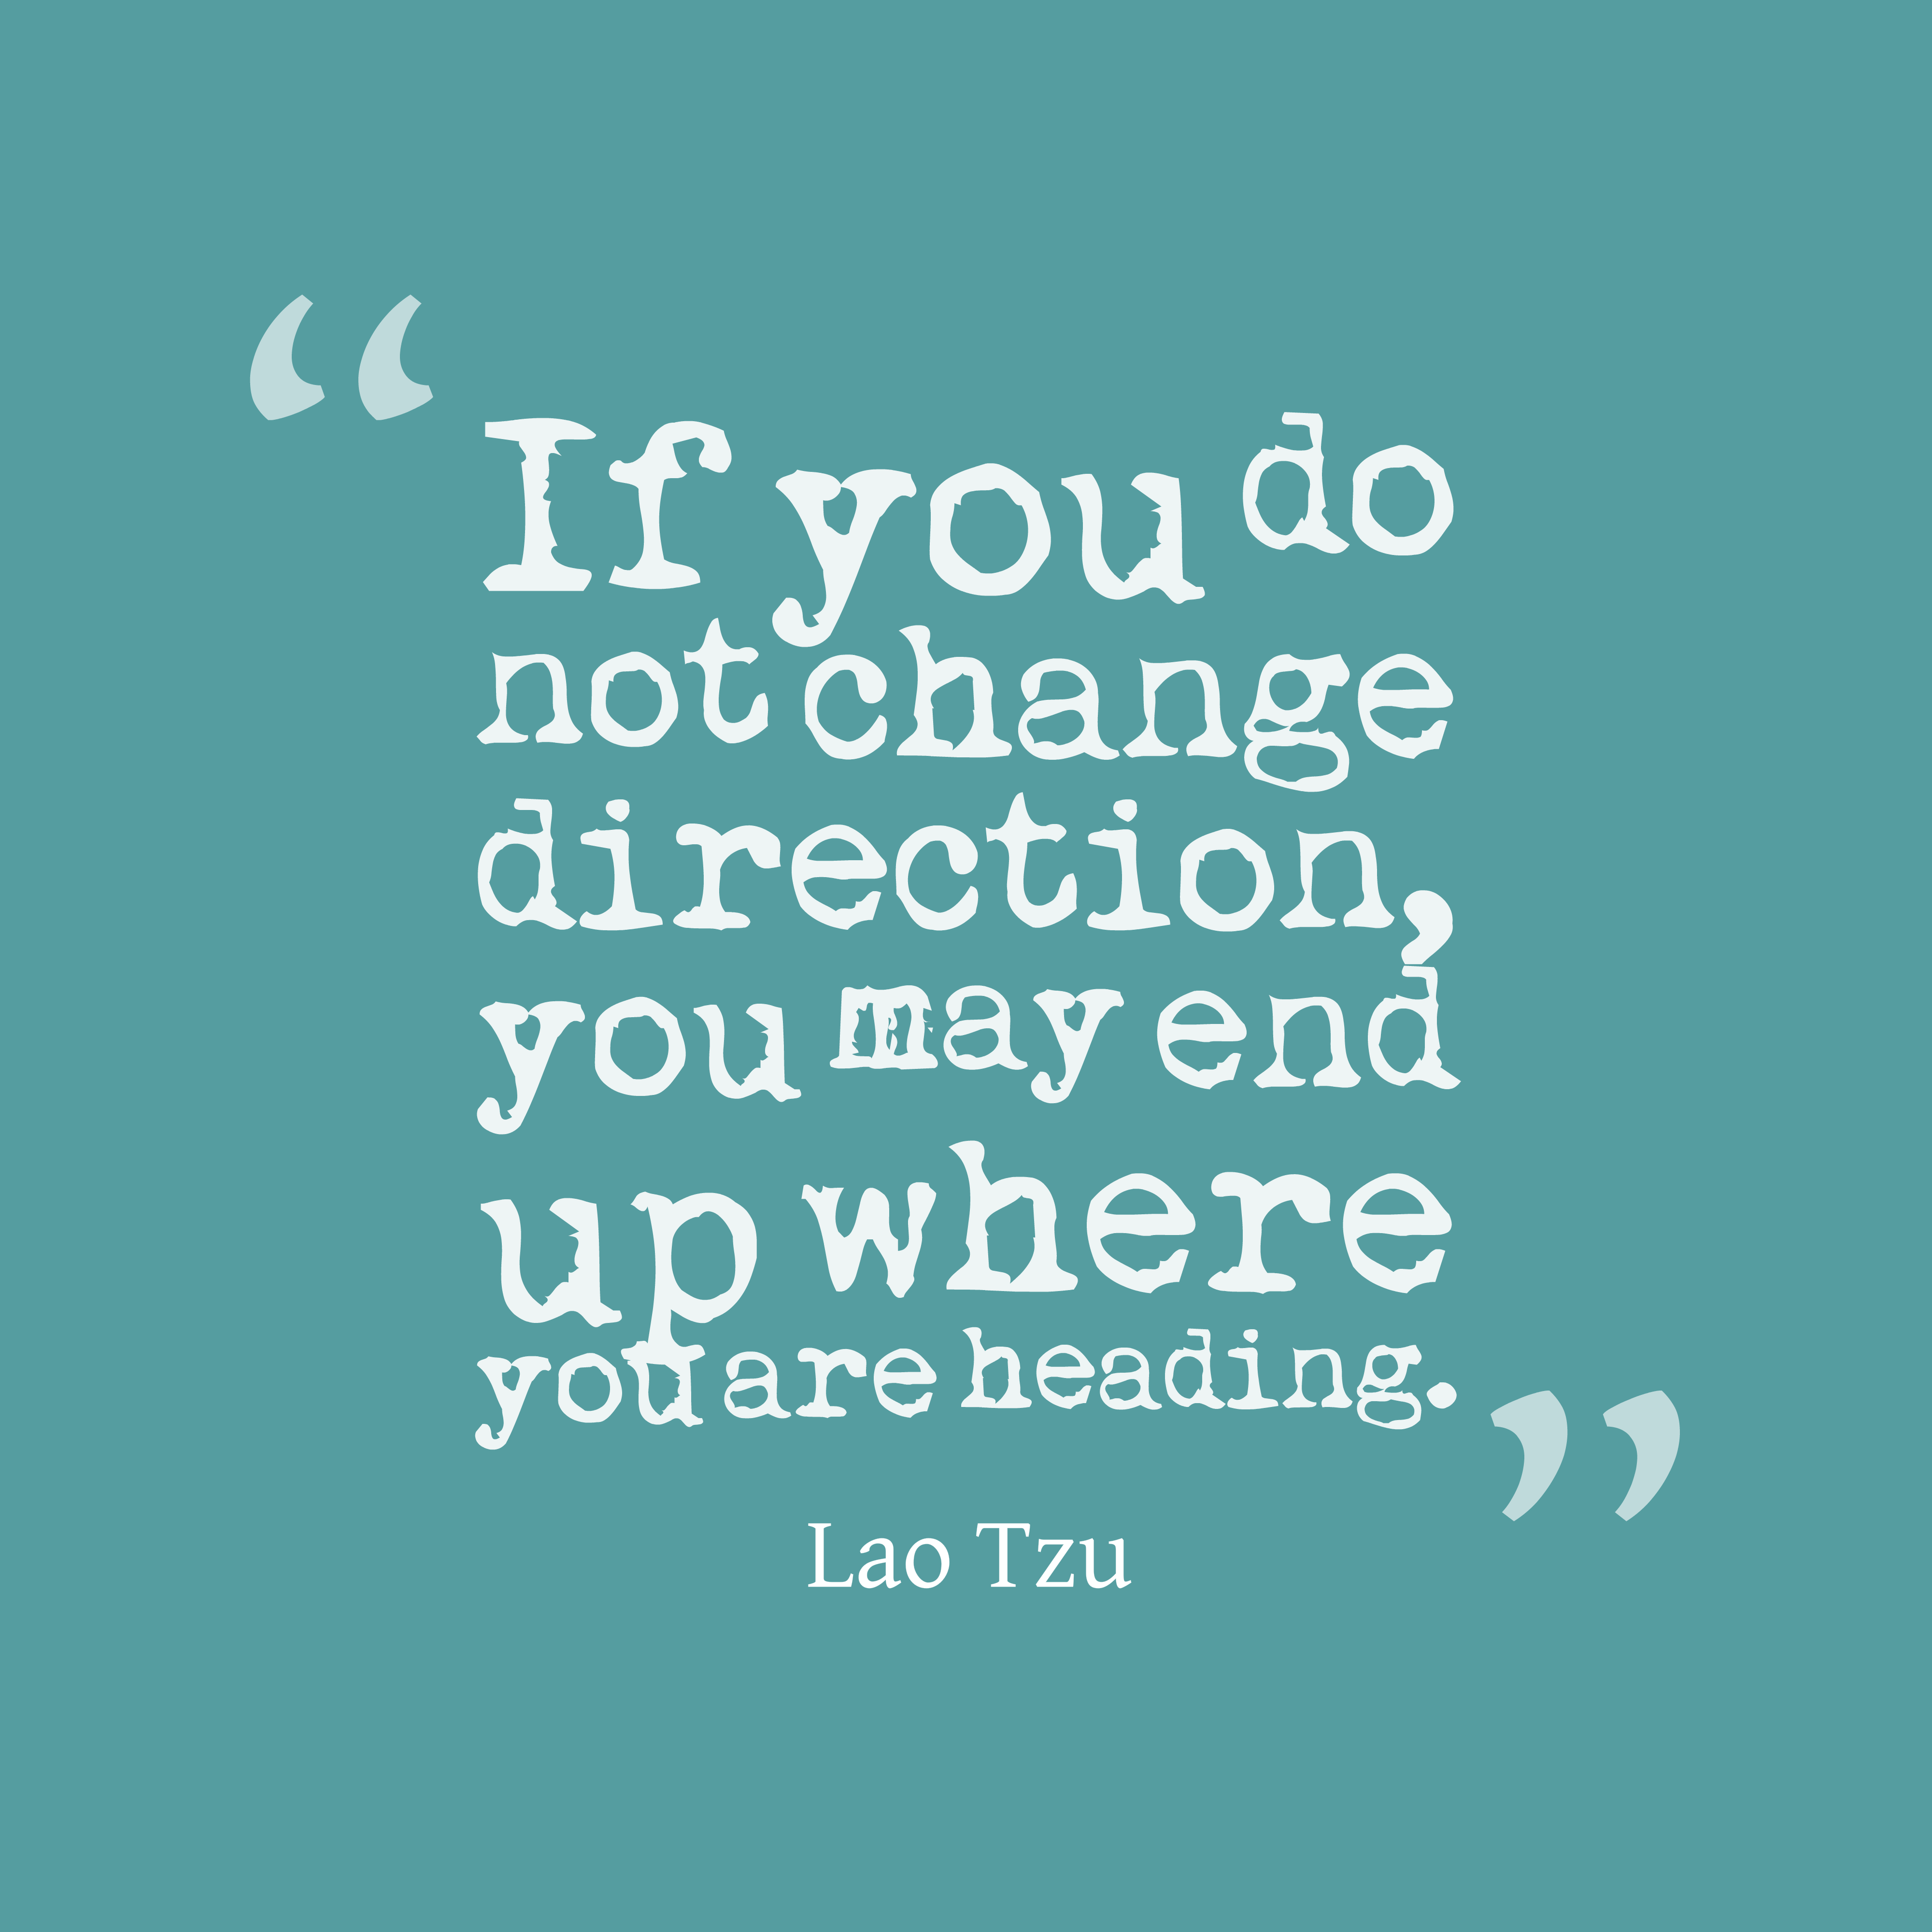 Quote On Change | Quotes About Change Ratethequote